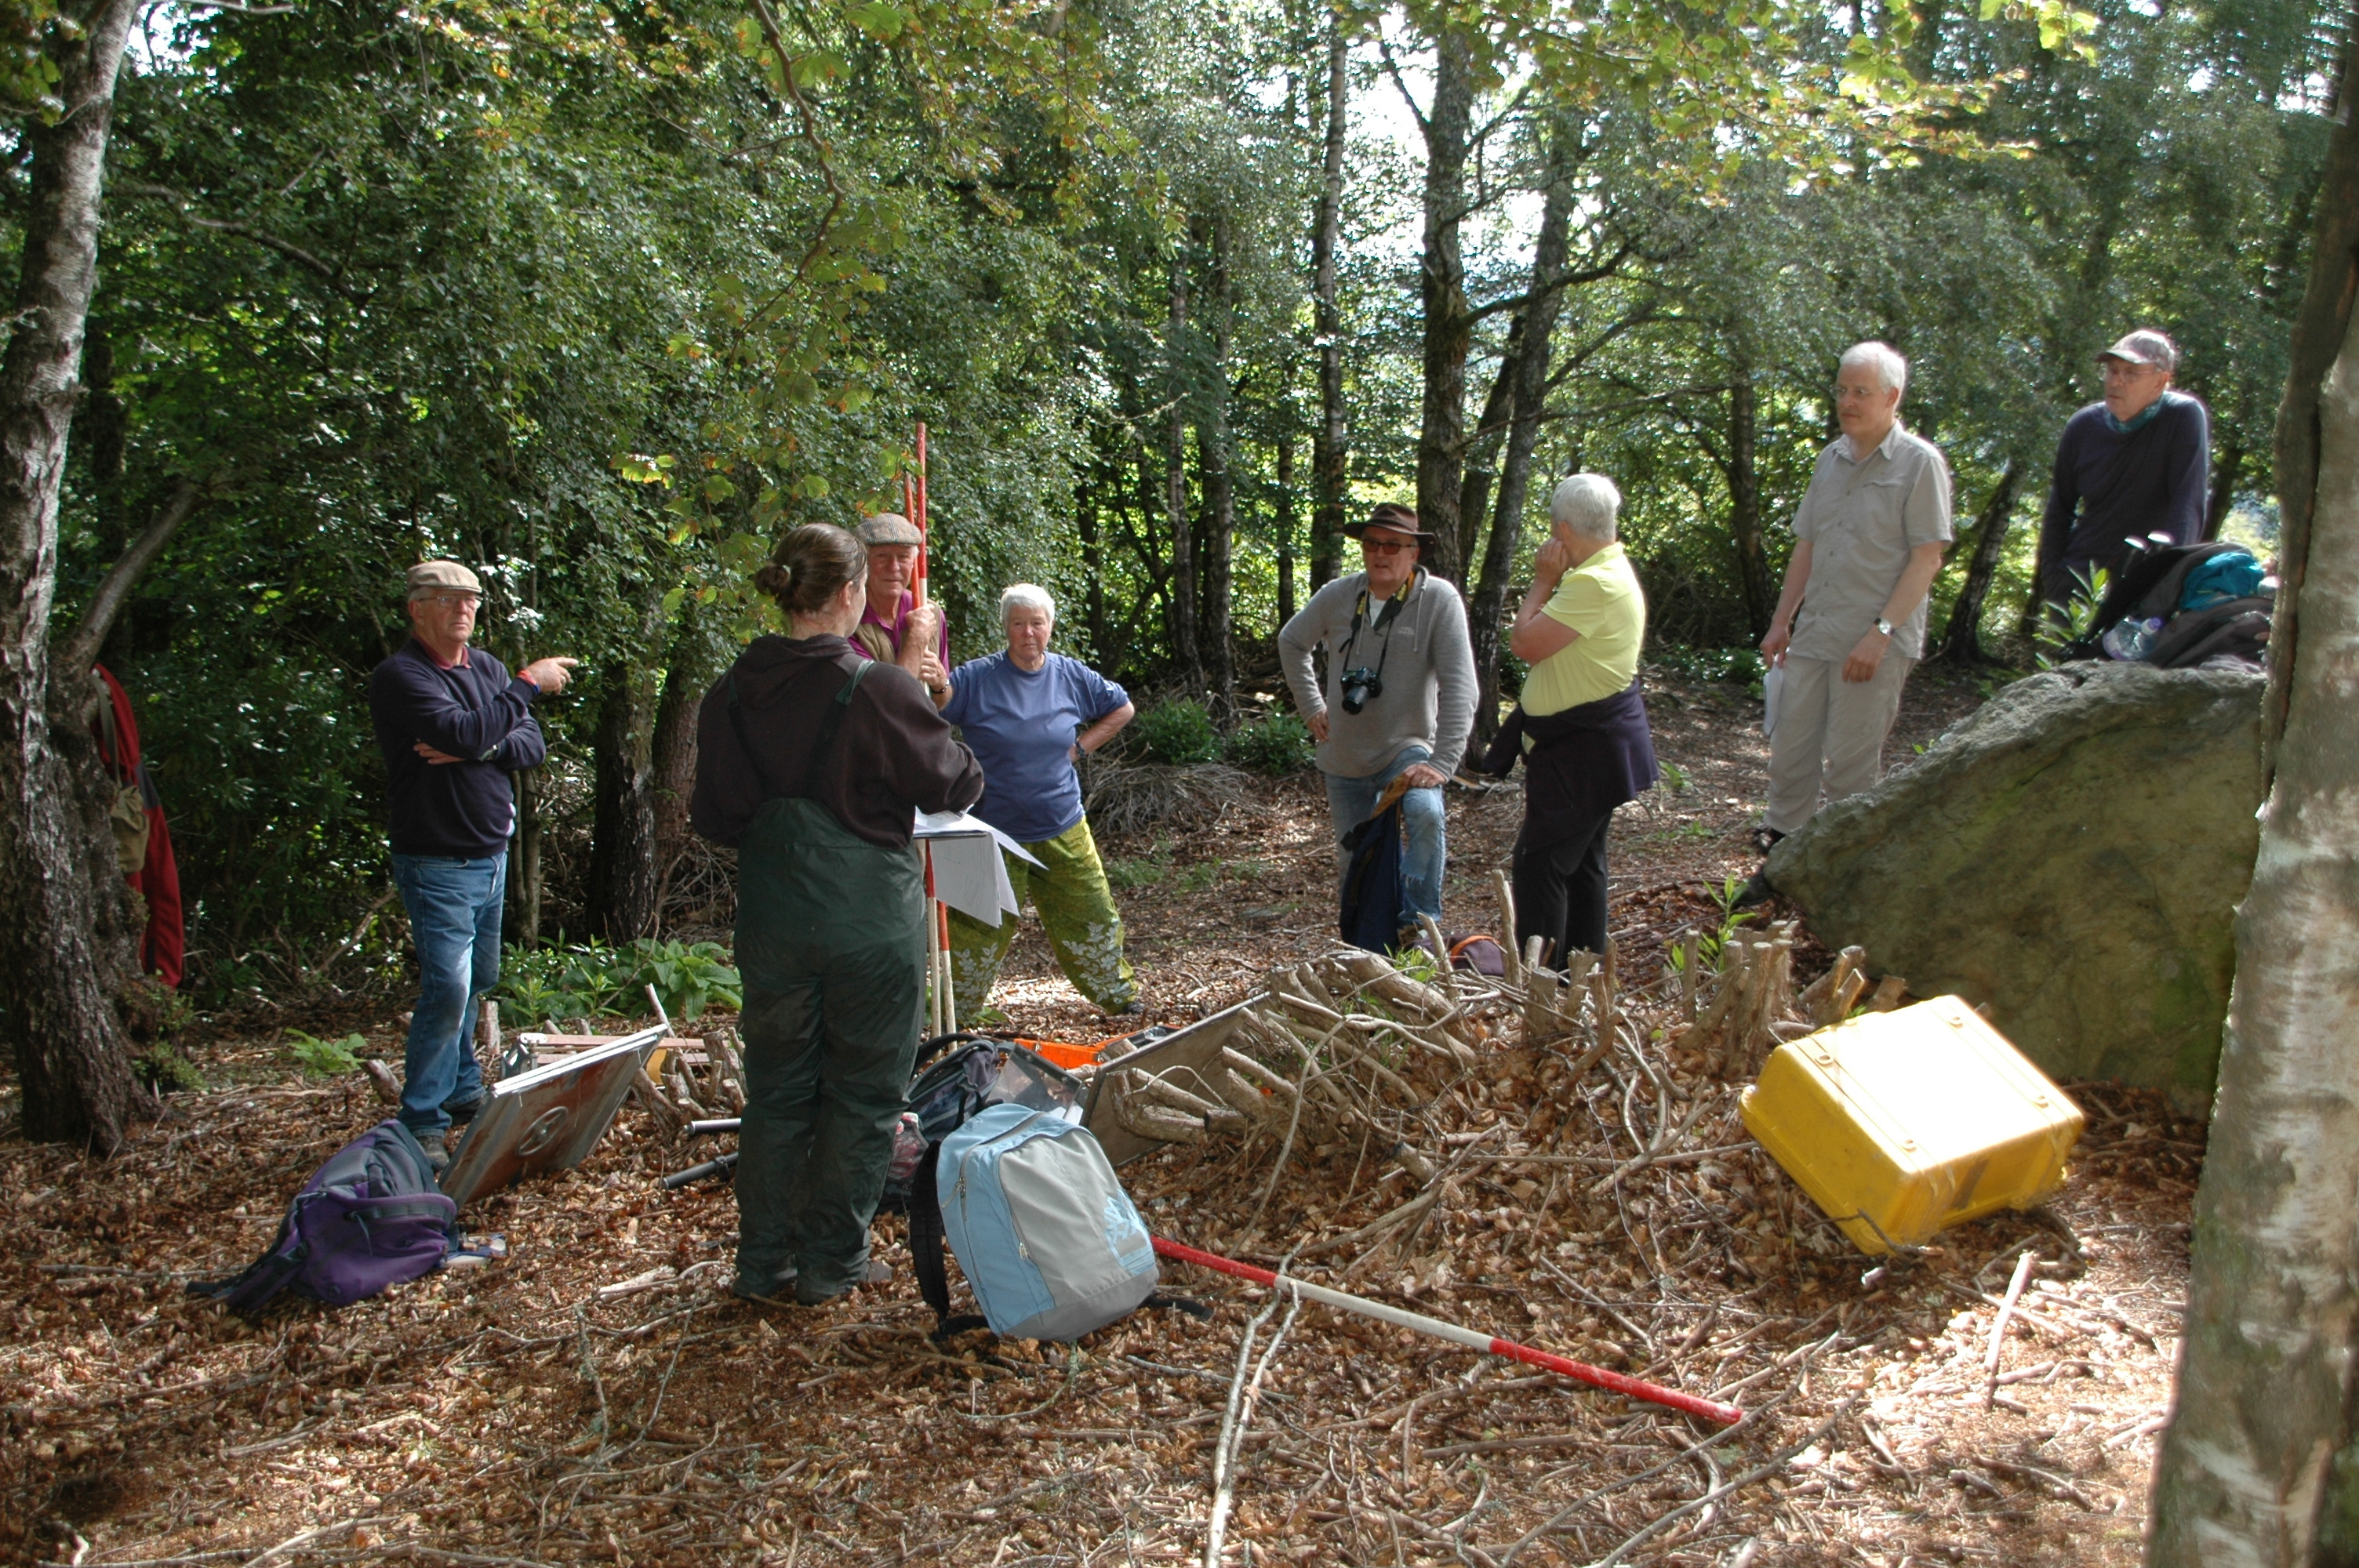 Community volunteers learning survey skills from AOC Archaeology, who will play a key role in the dig.